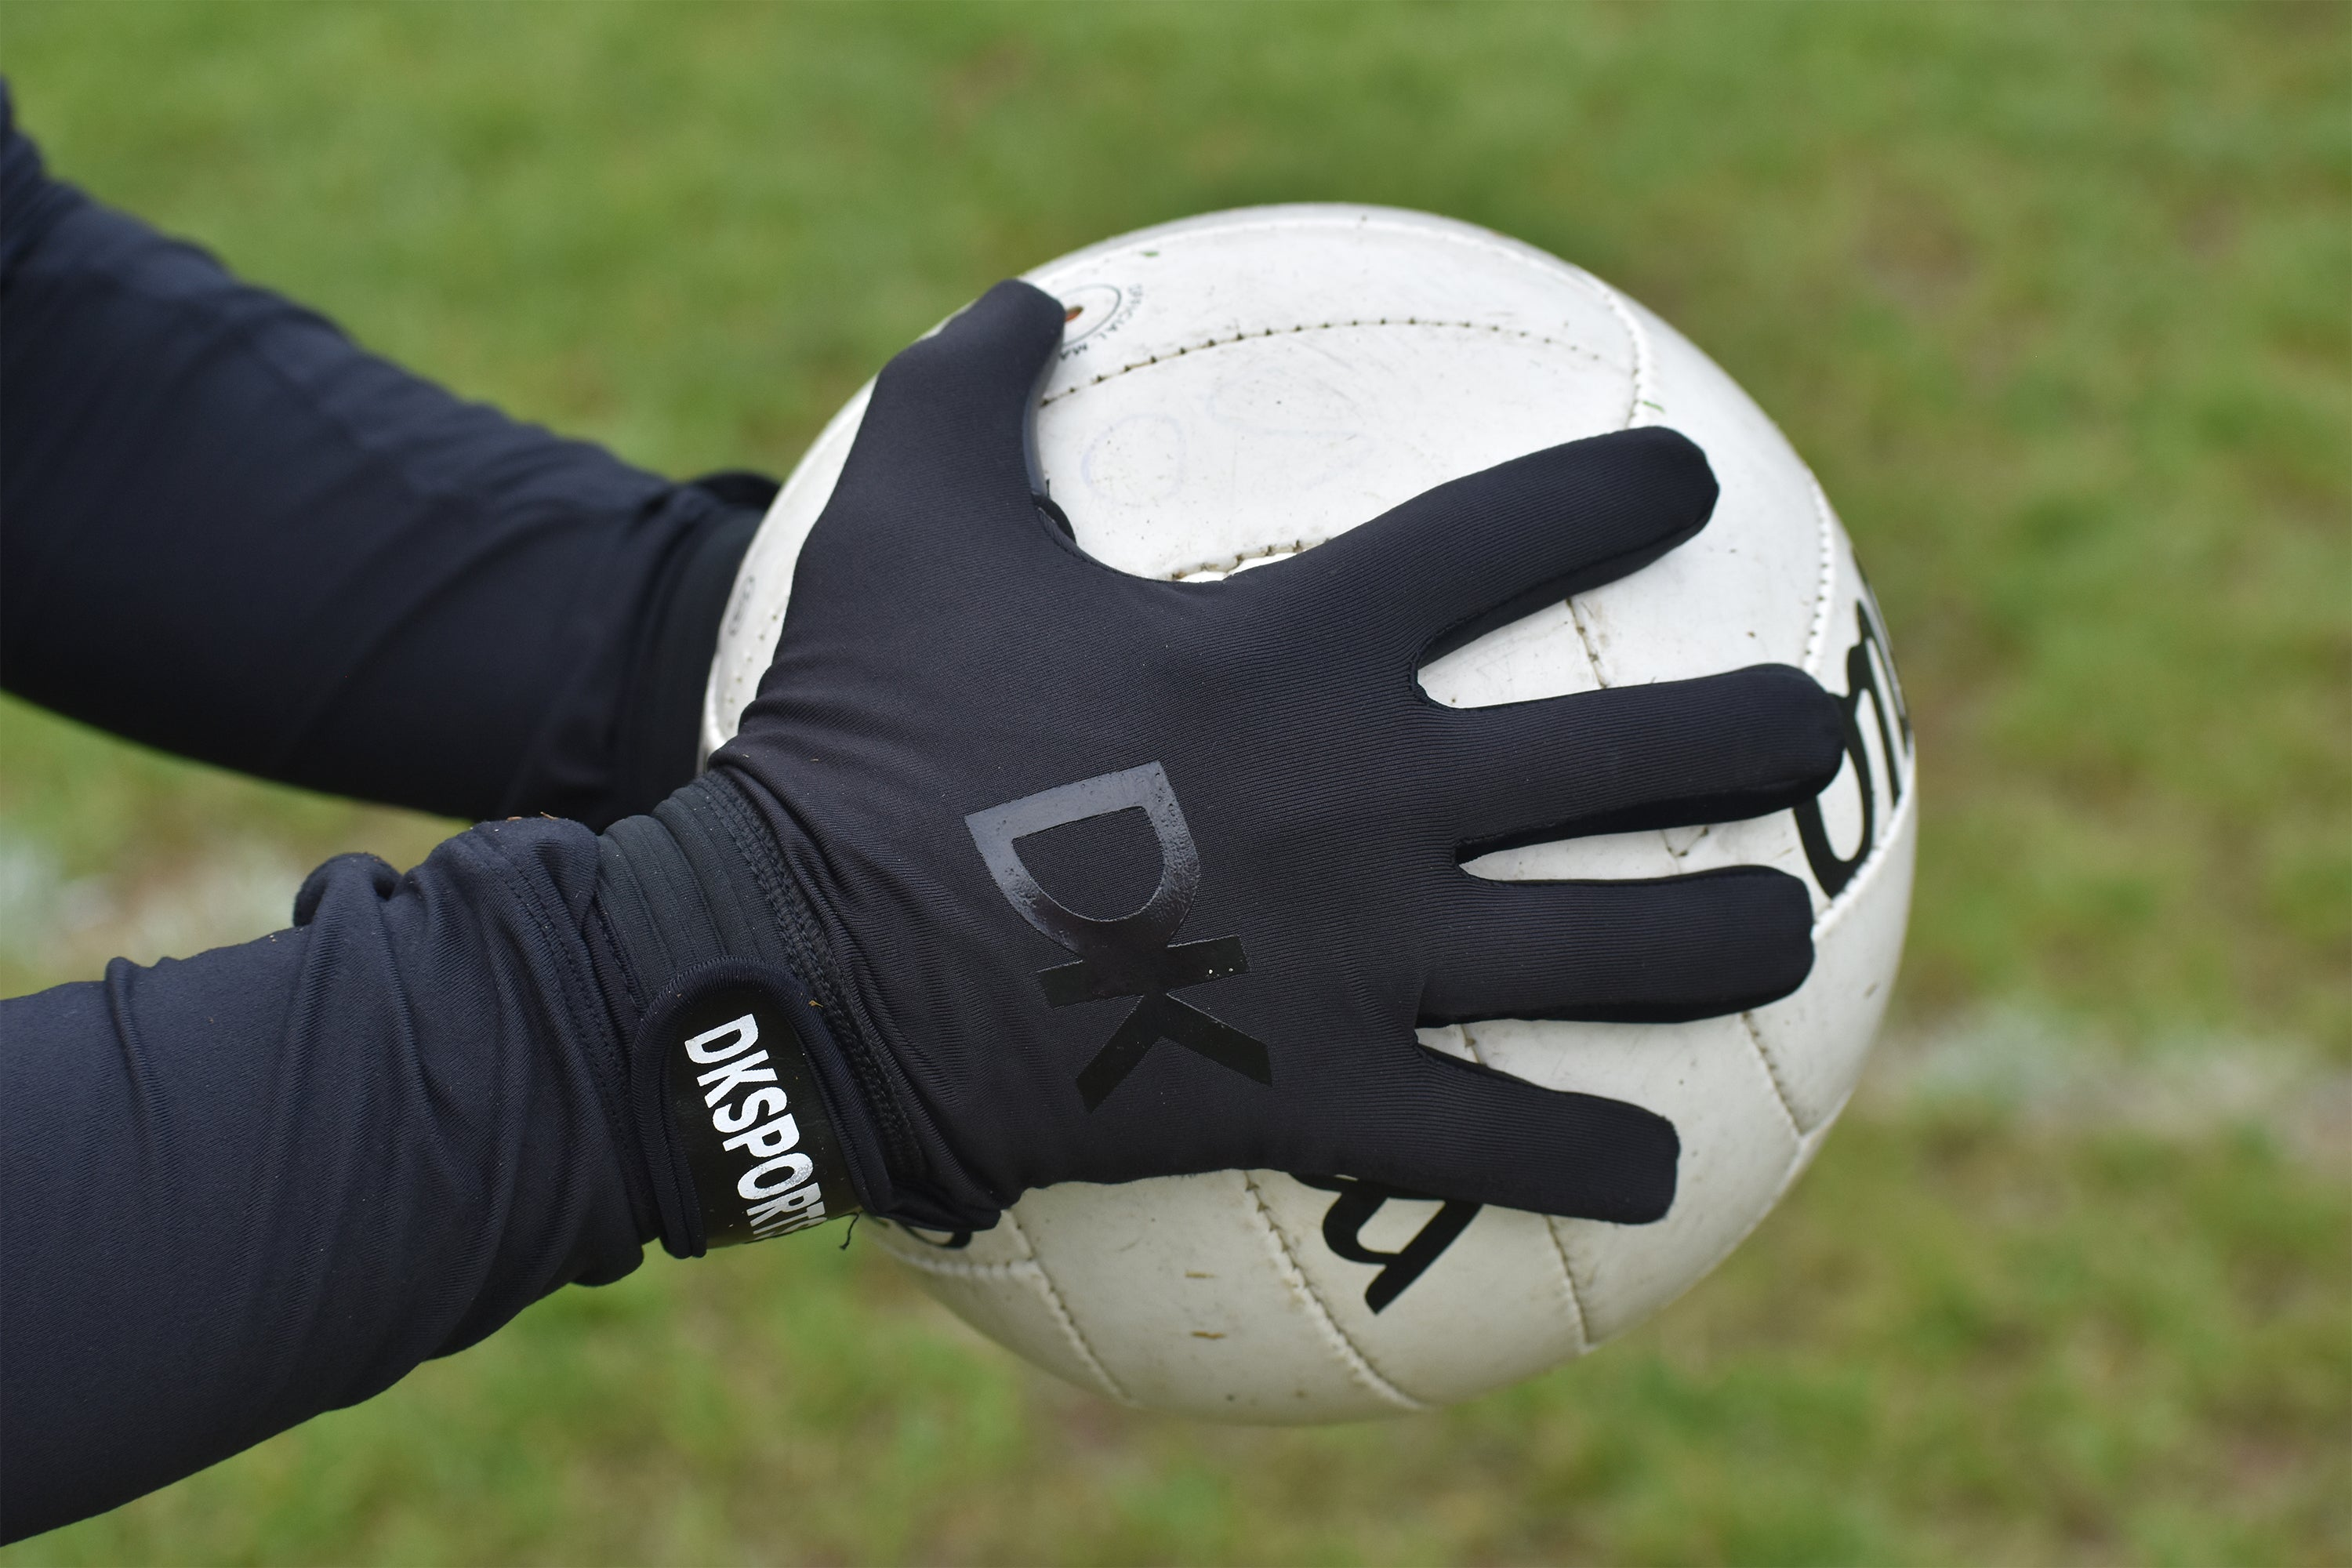 DK Sports Blacked Out Gloves provide firm grip of Gaelic football